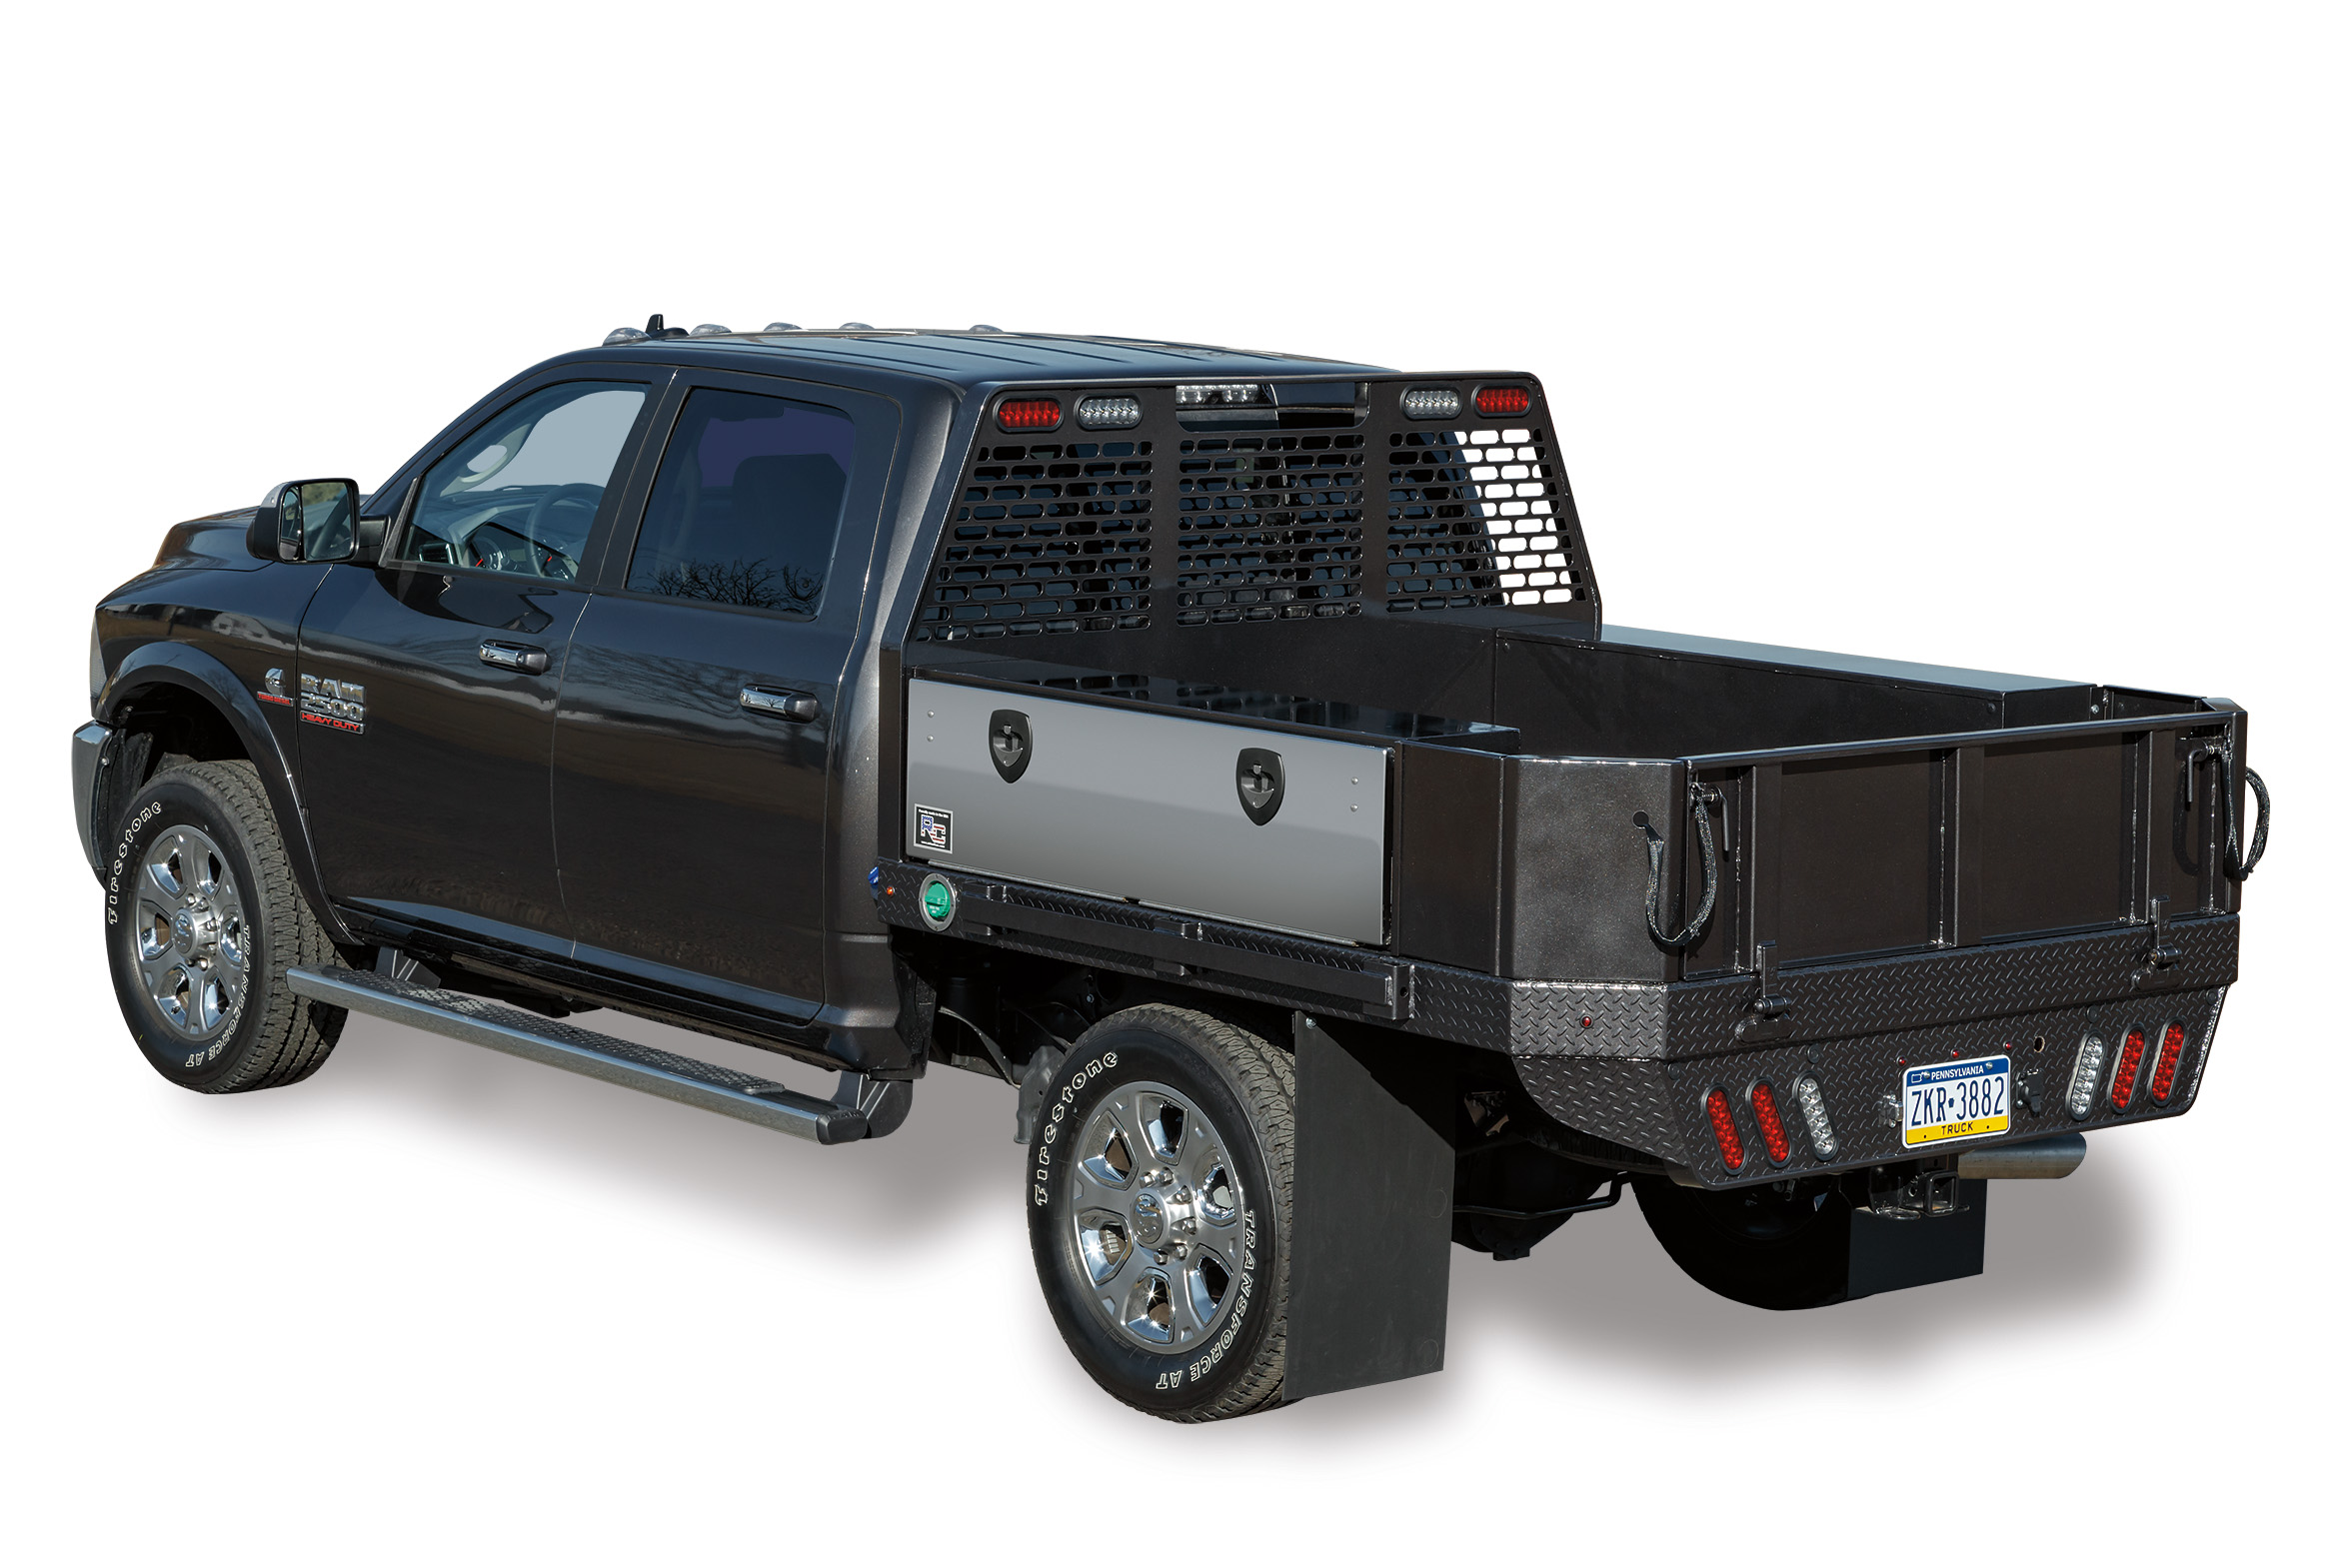 Truck Beds Toms Equipment And Trailers In Hickory And Washington Pa Flatbed Utility Livestock And Enclosed Trailer Dealer In Hickory And Washington Pa